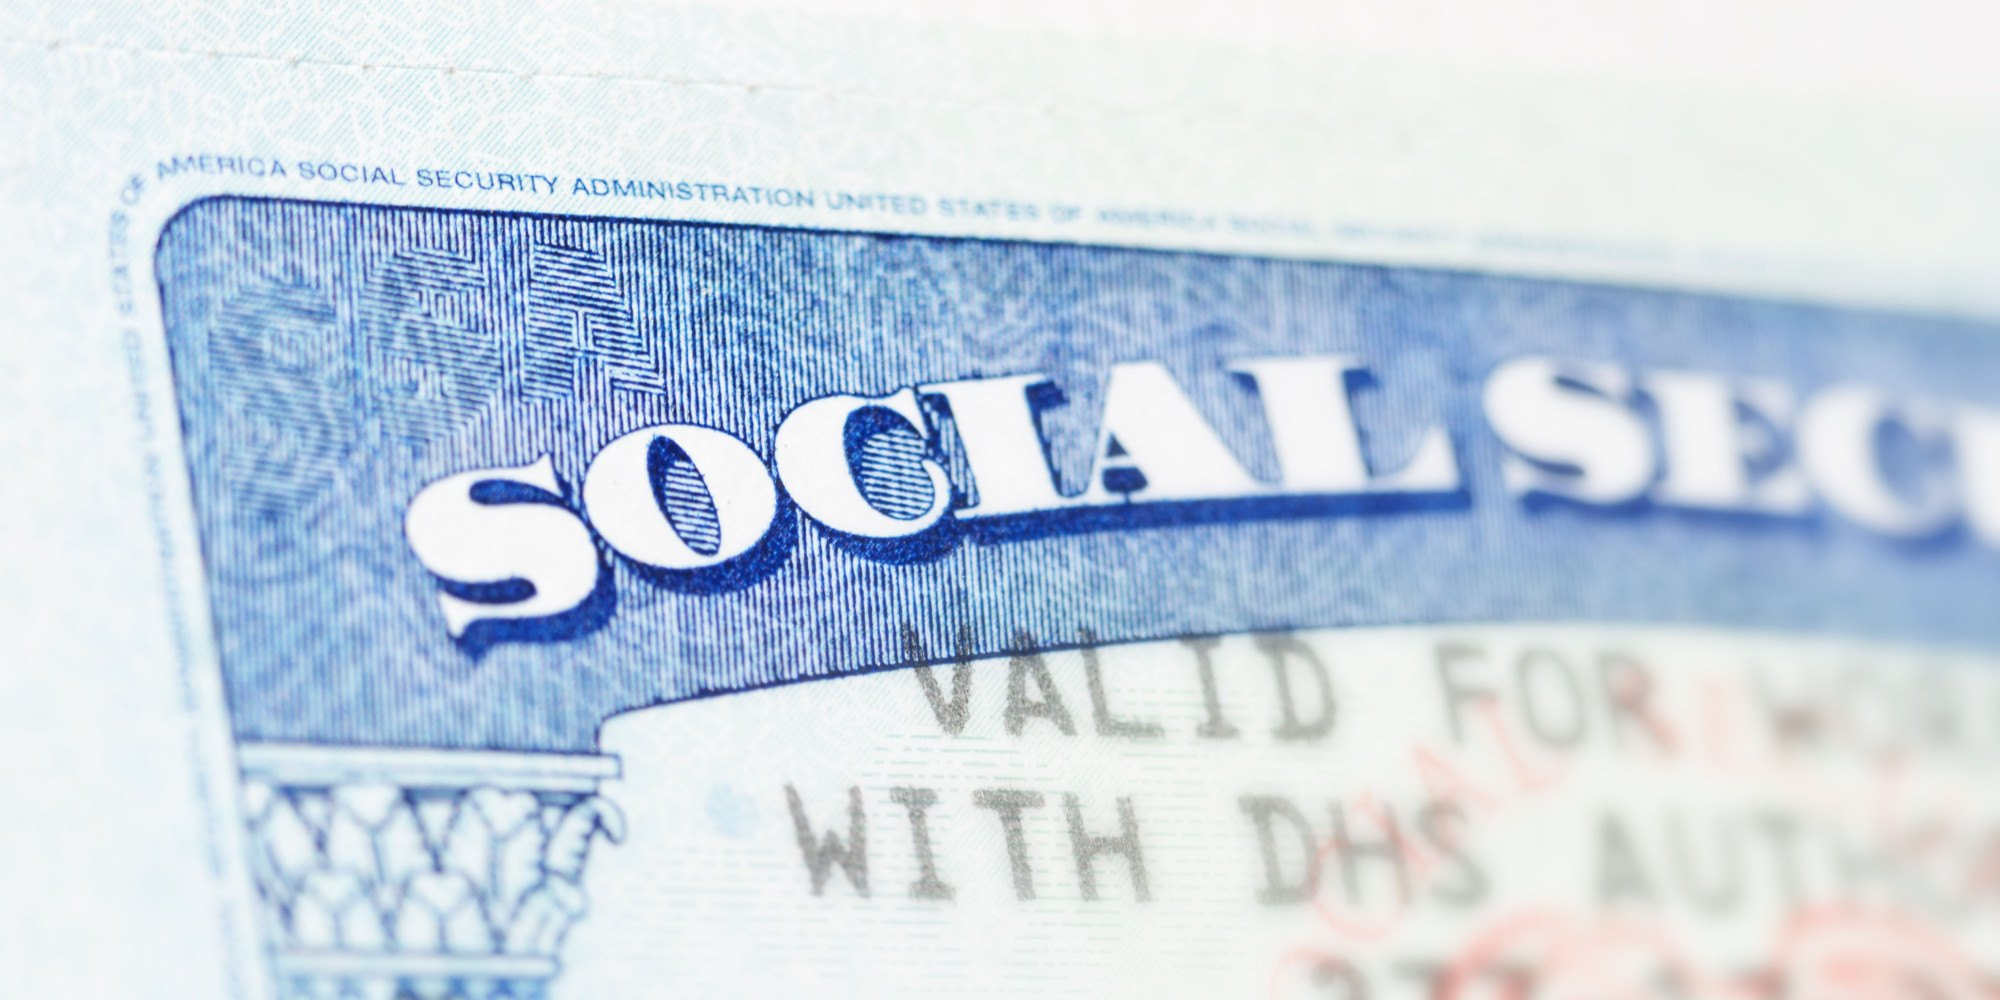 Learn How To Protect Your Social Security Number